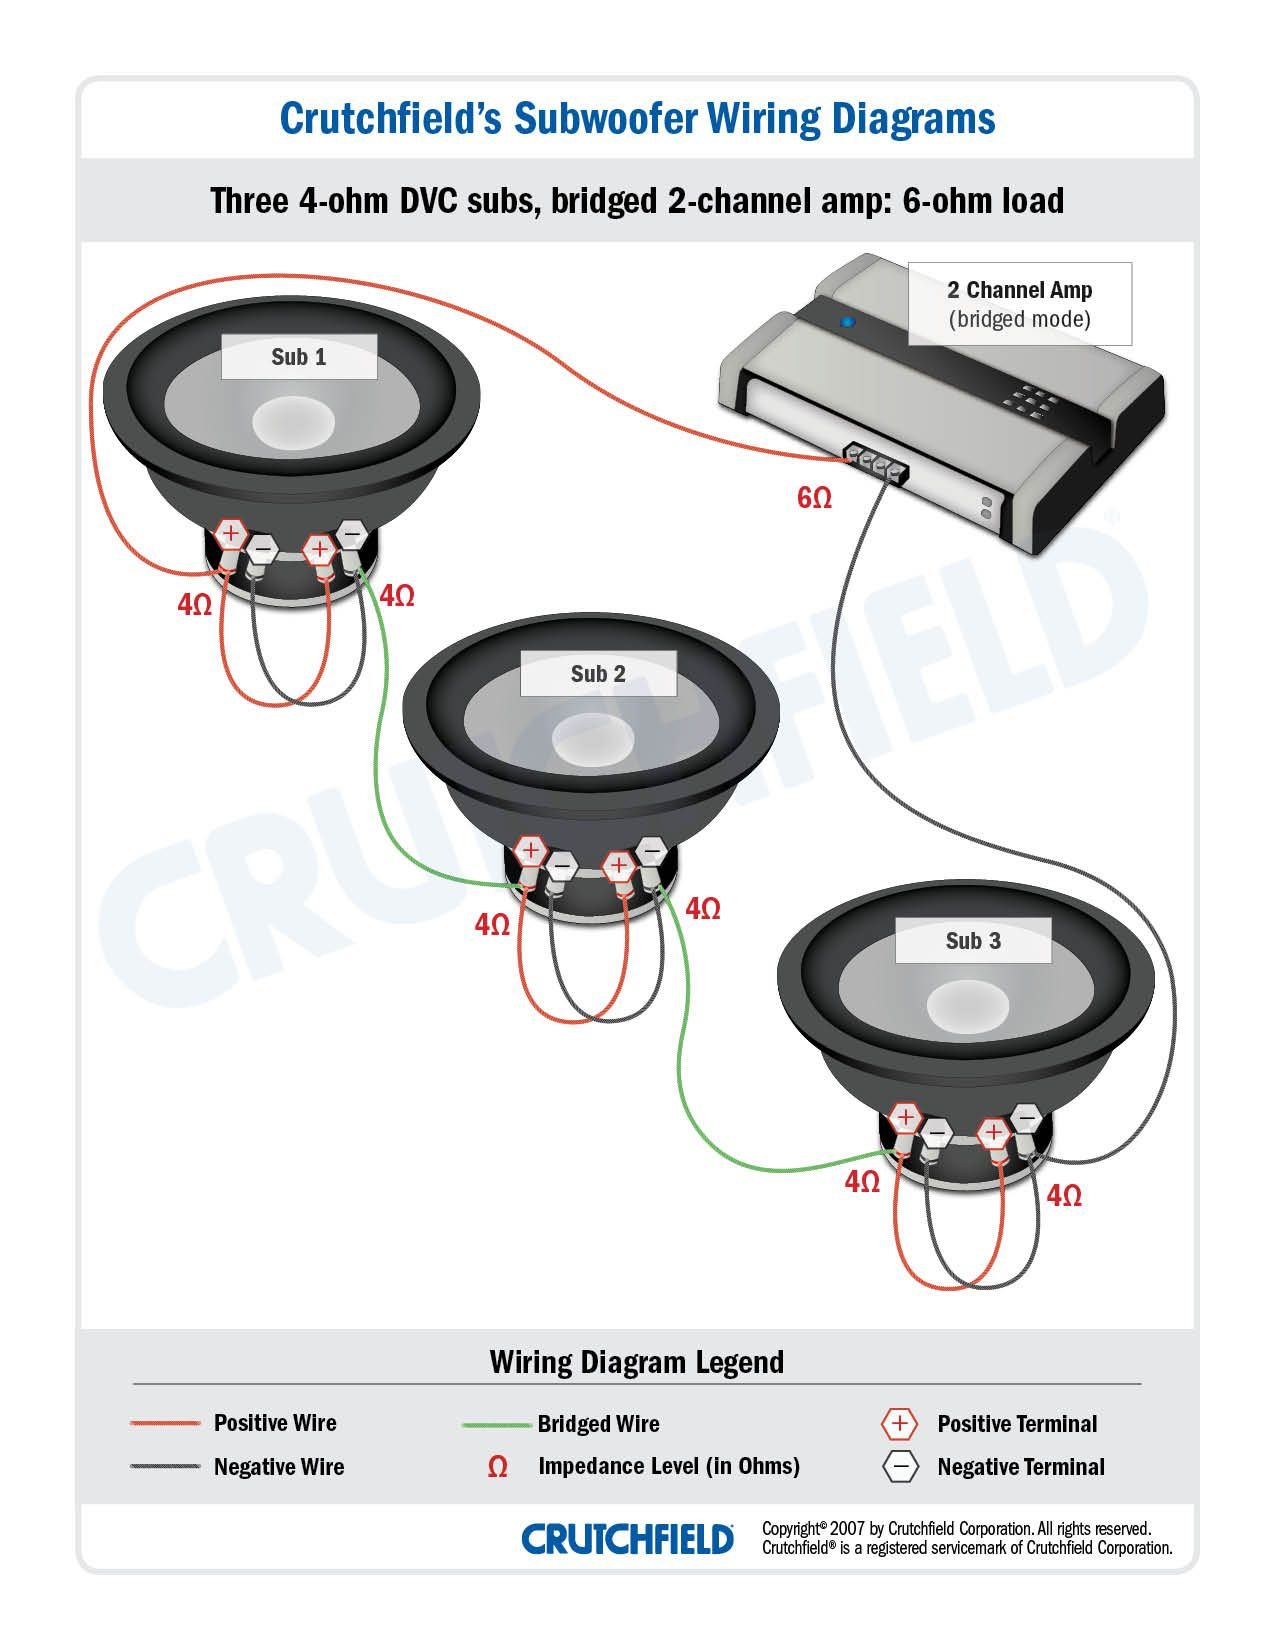 top 10 subwoofer wiring diagram free download 3 dvc 4 ohm 2 ch and Car Stereo Subwoofer Wiring